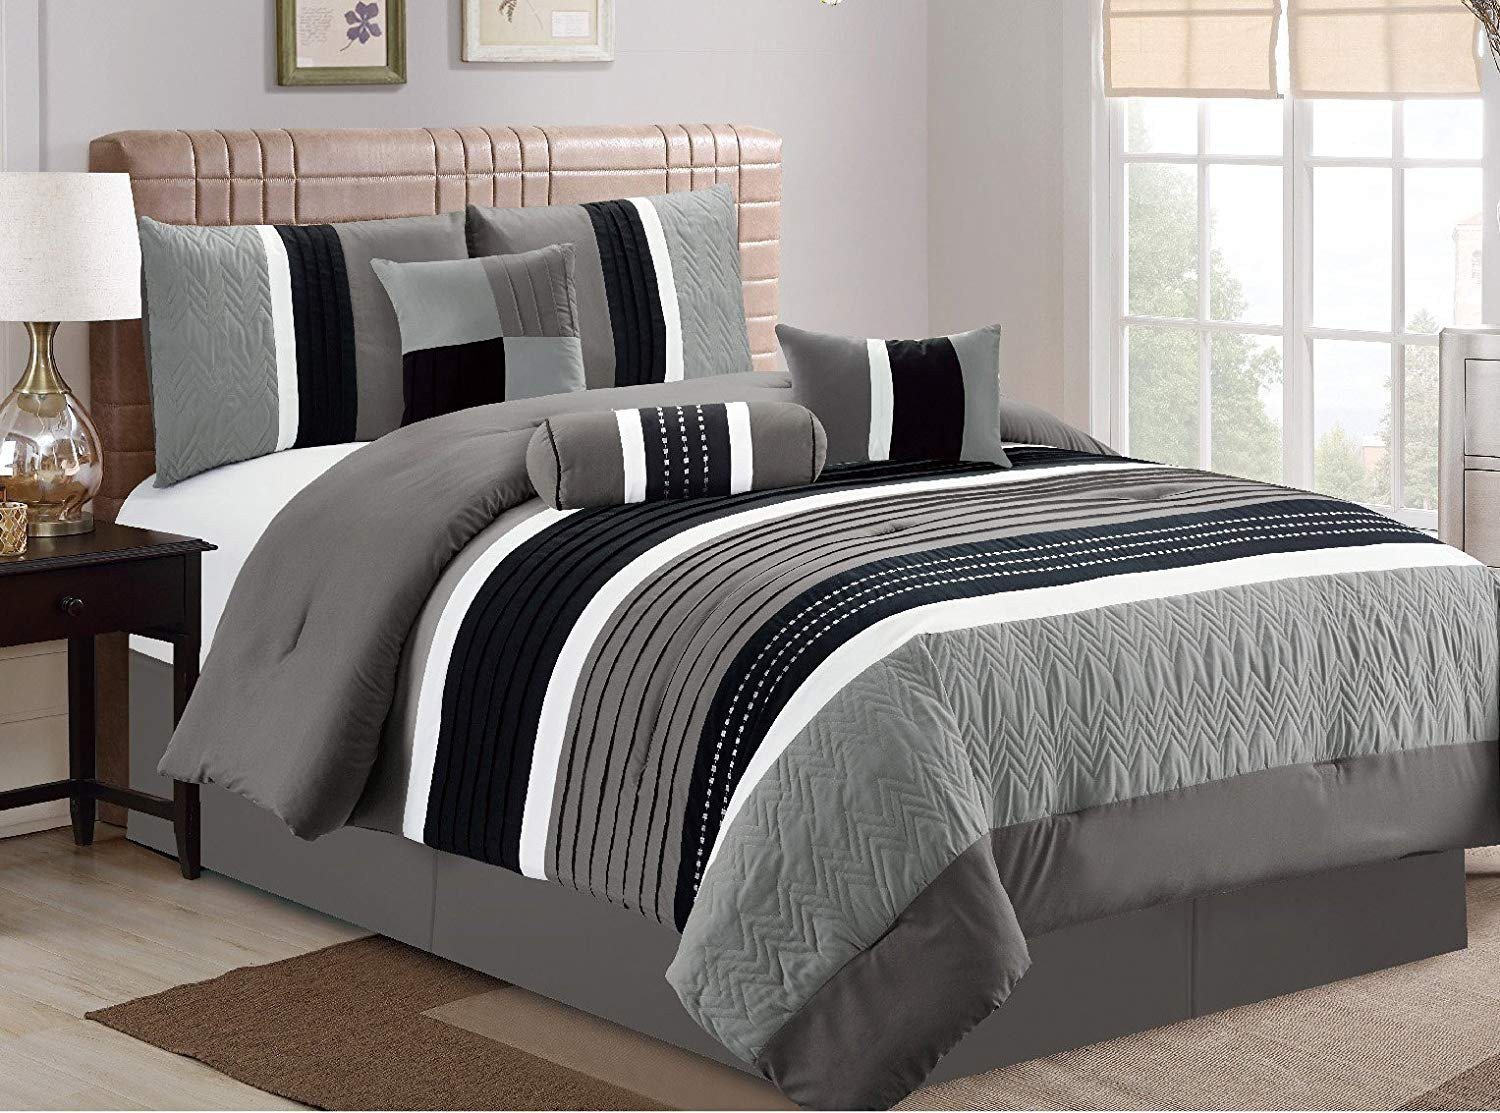 7 Piece Bedroom Set King Luxury Esca 7 Piece Closeout Luxury Bed In Bag forter Set Queen Grey